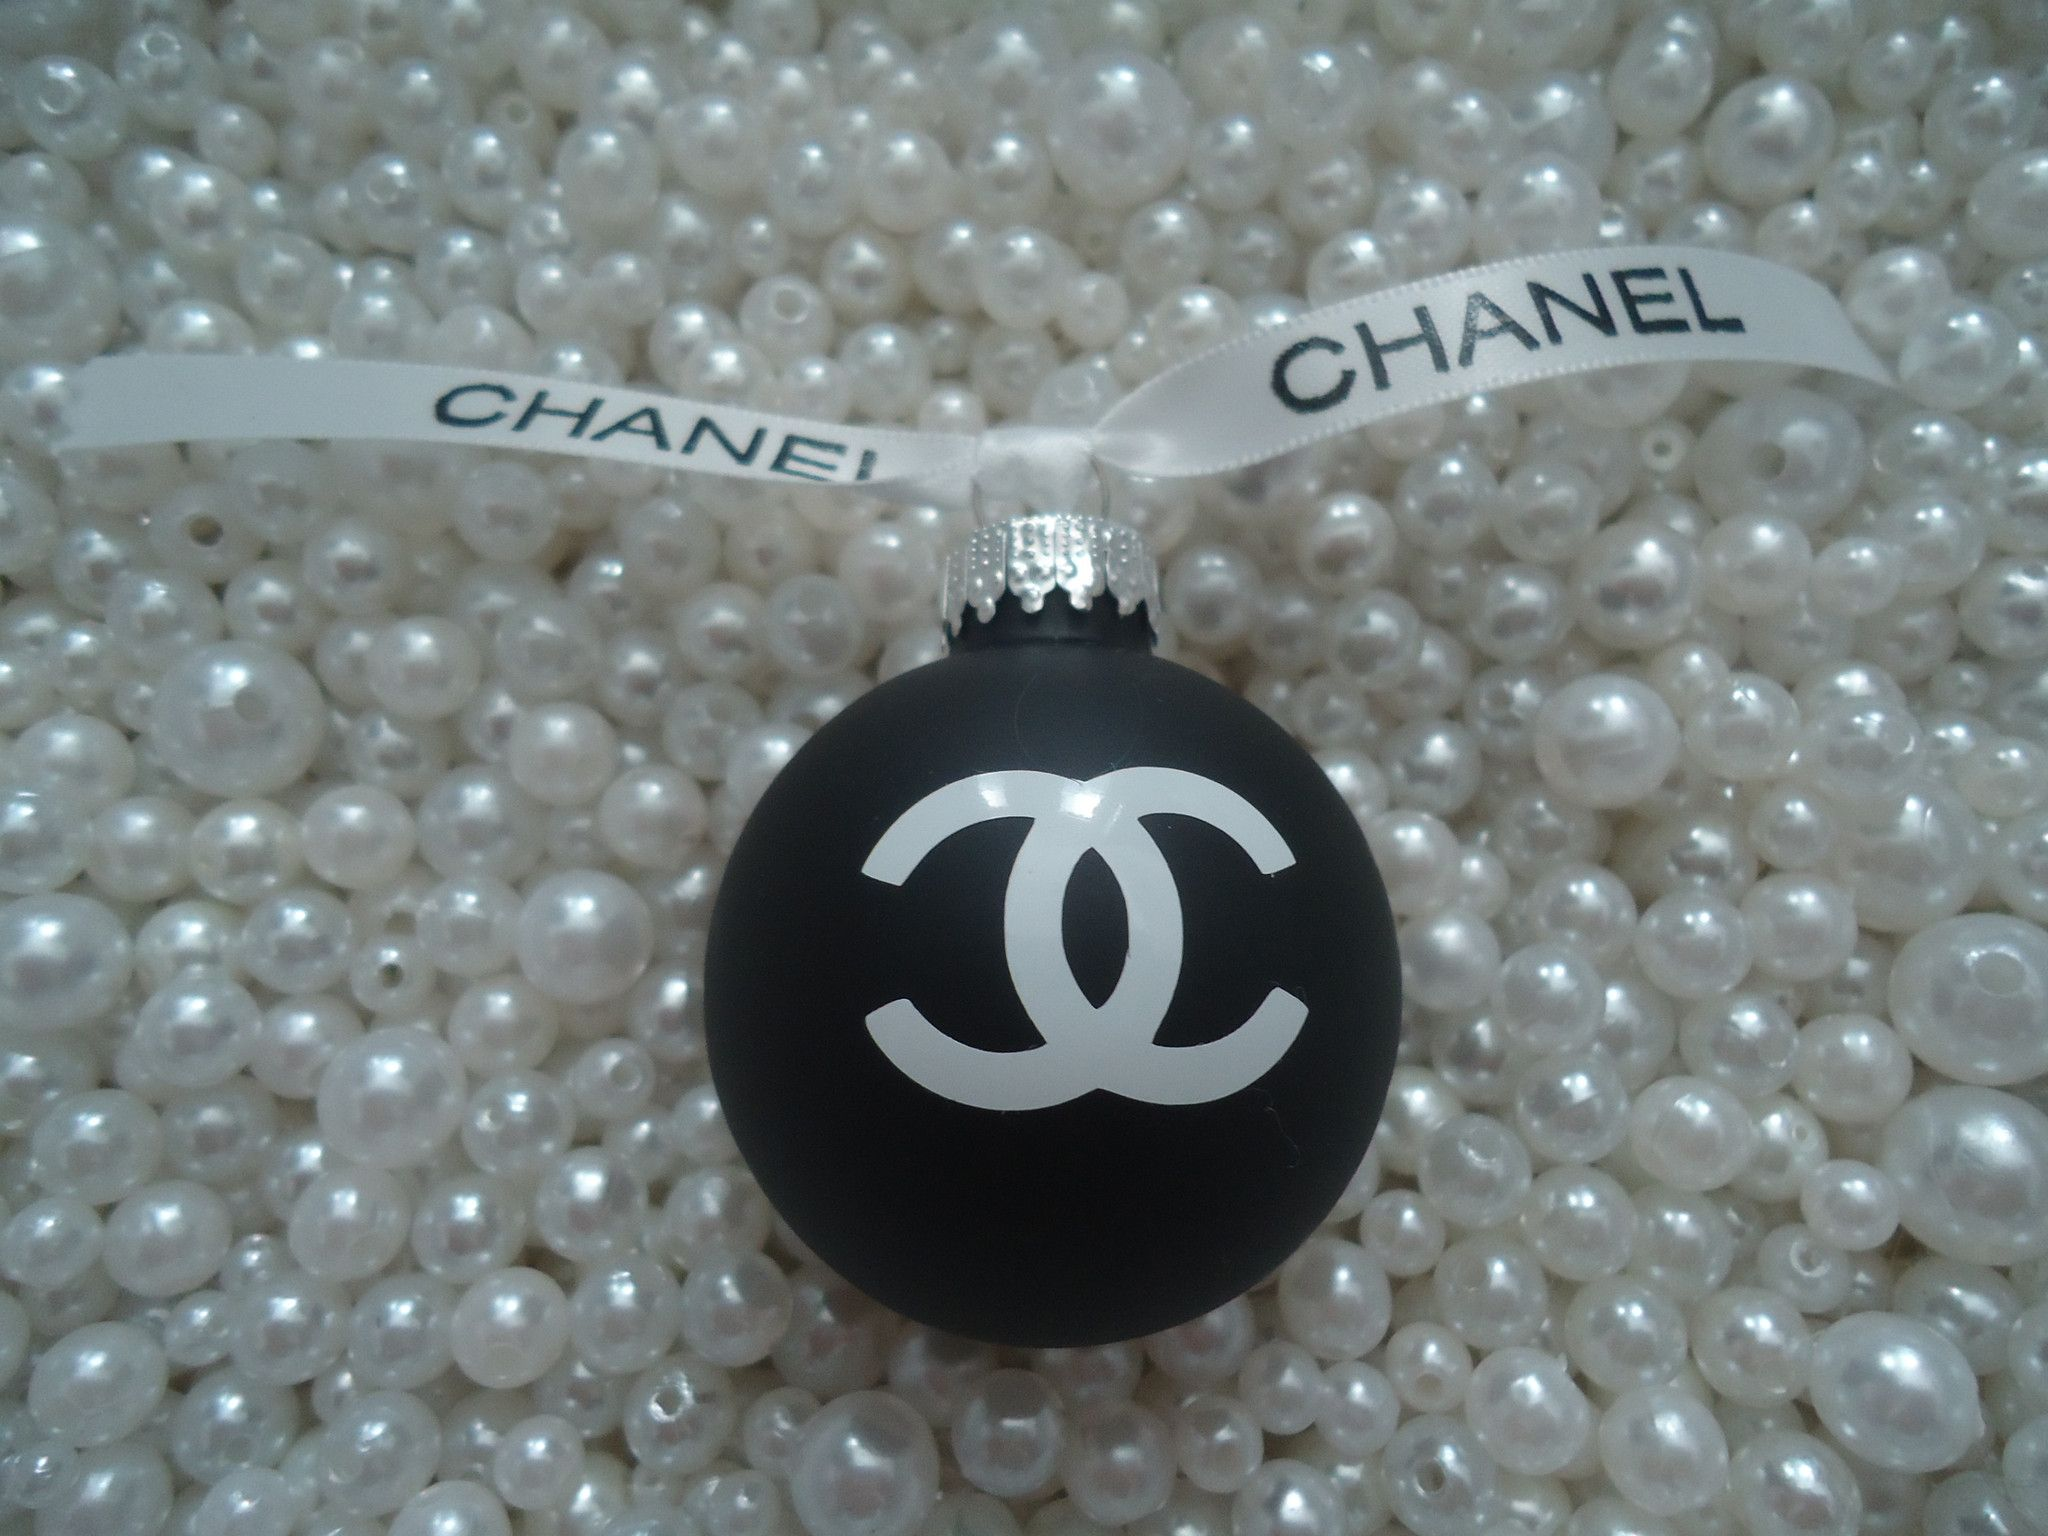 Chanel inspired matte black glass christmas tree ornament with